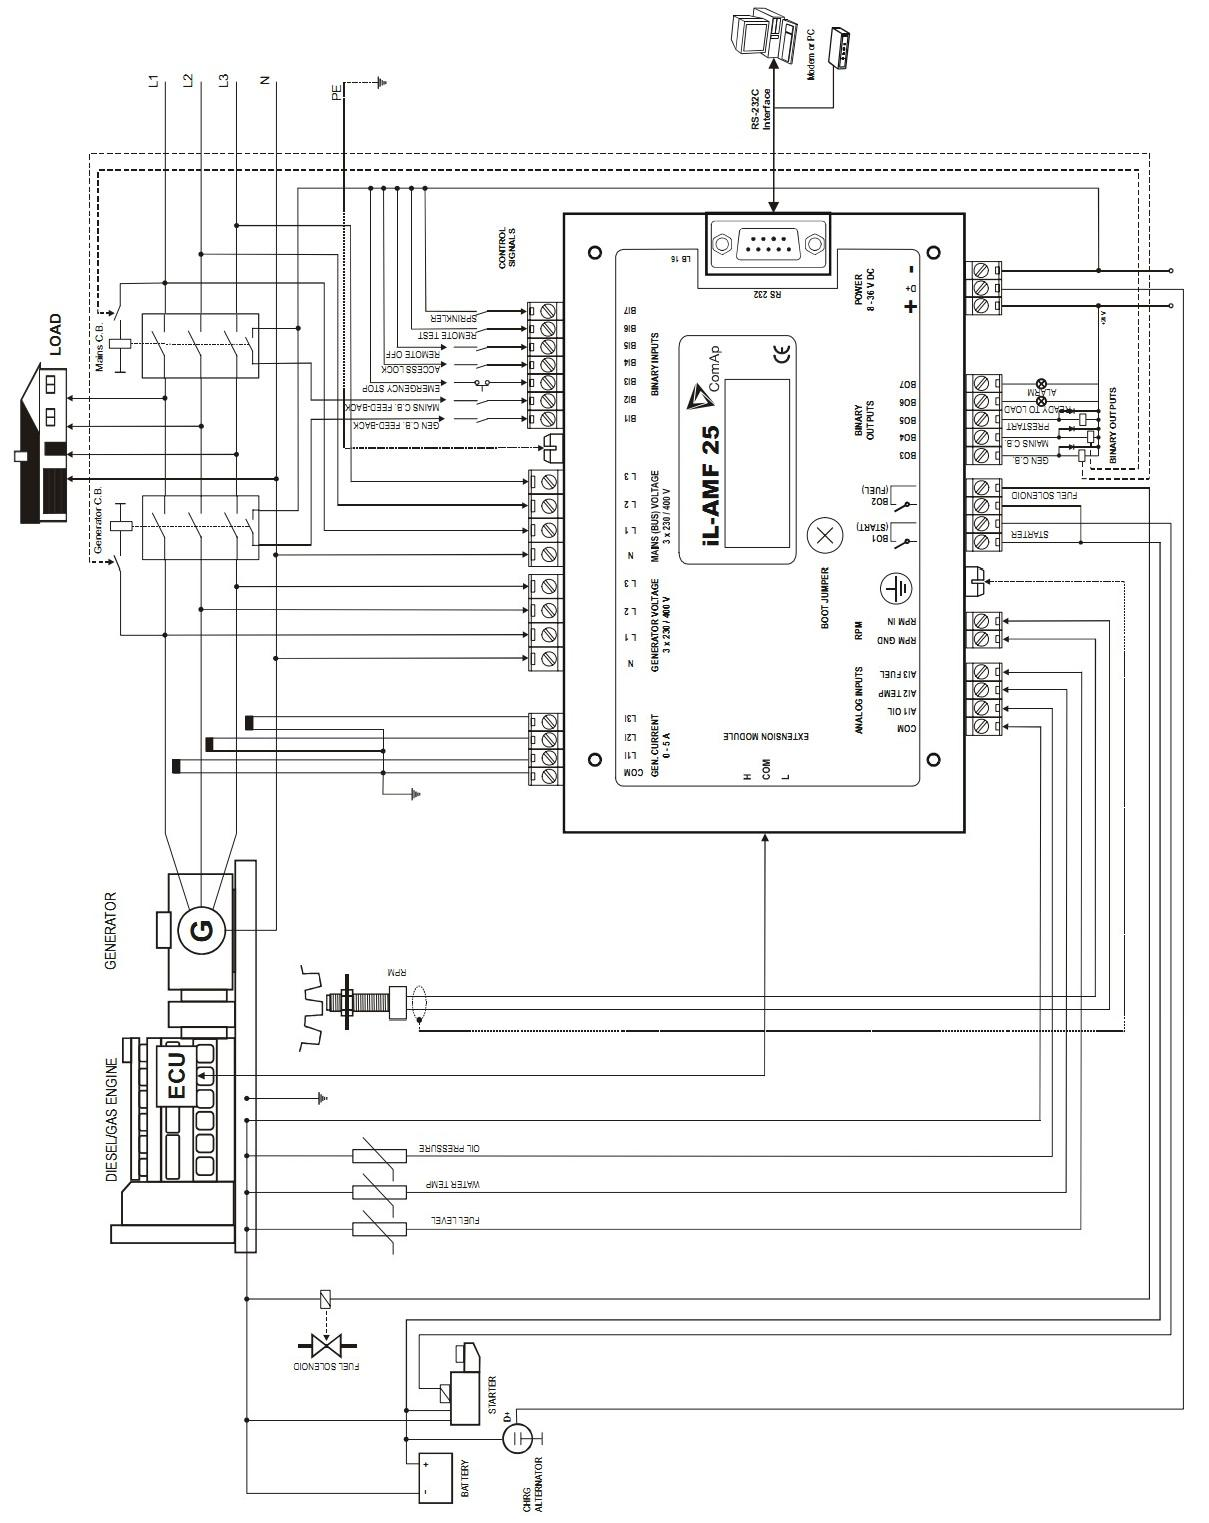 201210228323863 sx440 avr wiring diagram stamford mx321 manual \u2022 wiring diagrams sx460 avr wiring diagram at bayanpartner.co